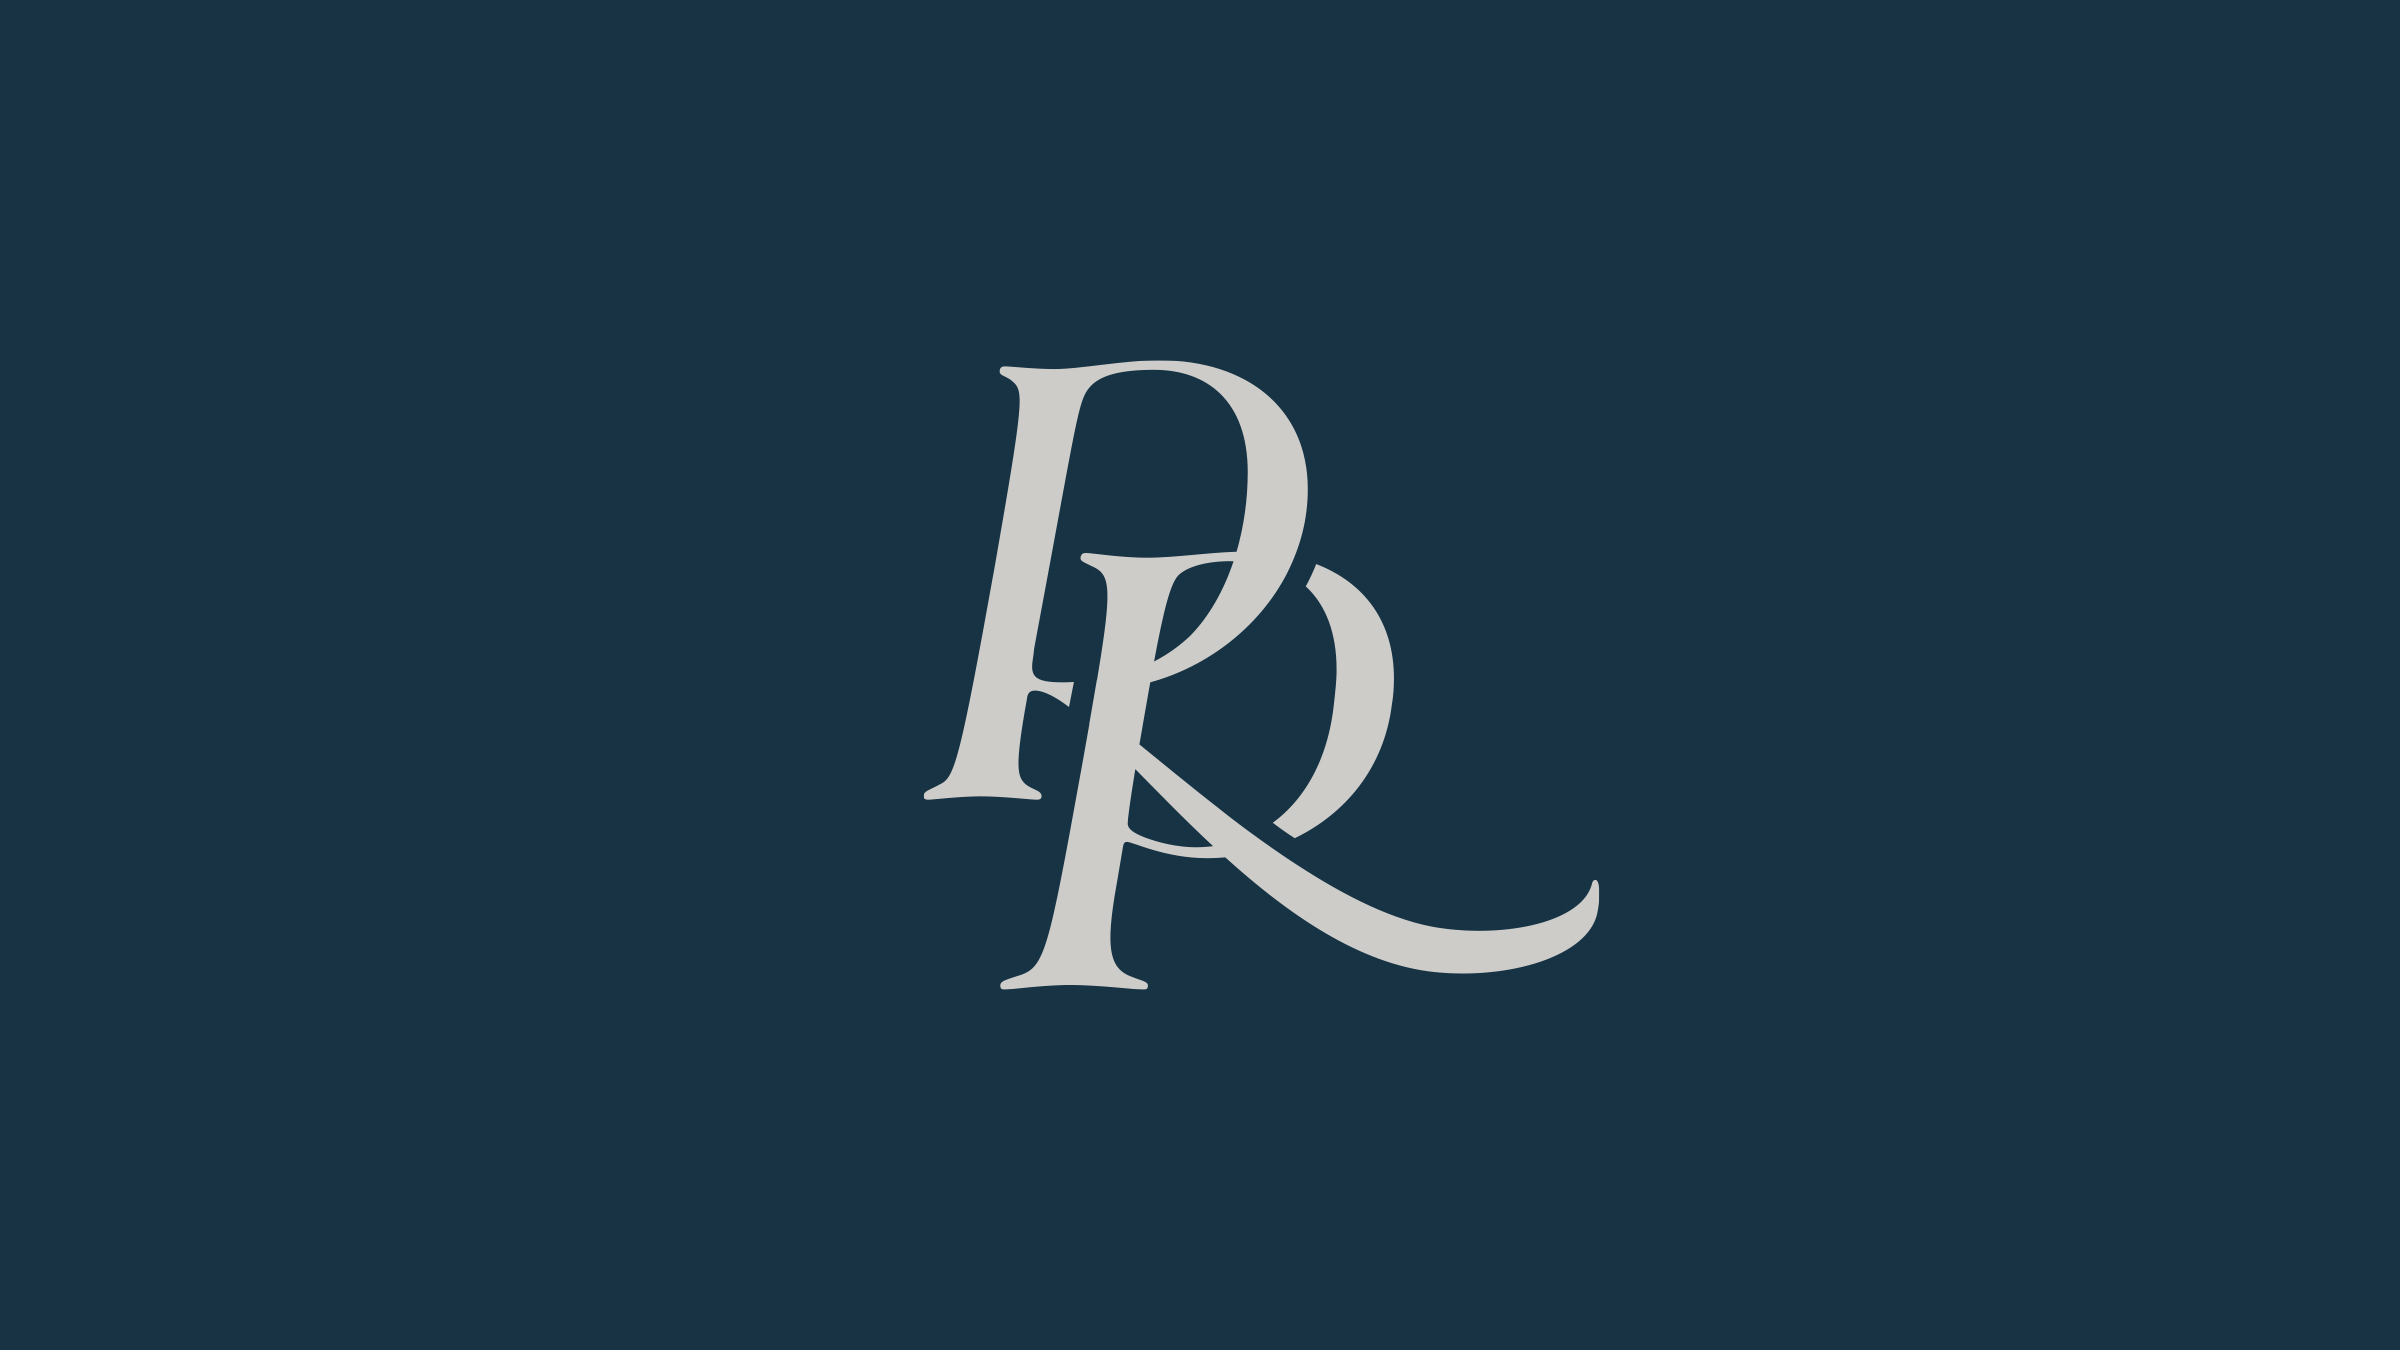 Res Publica brand logo grey on blue